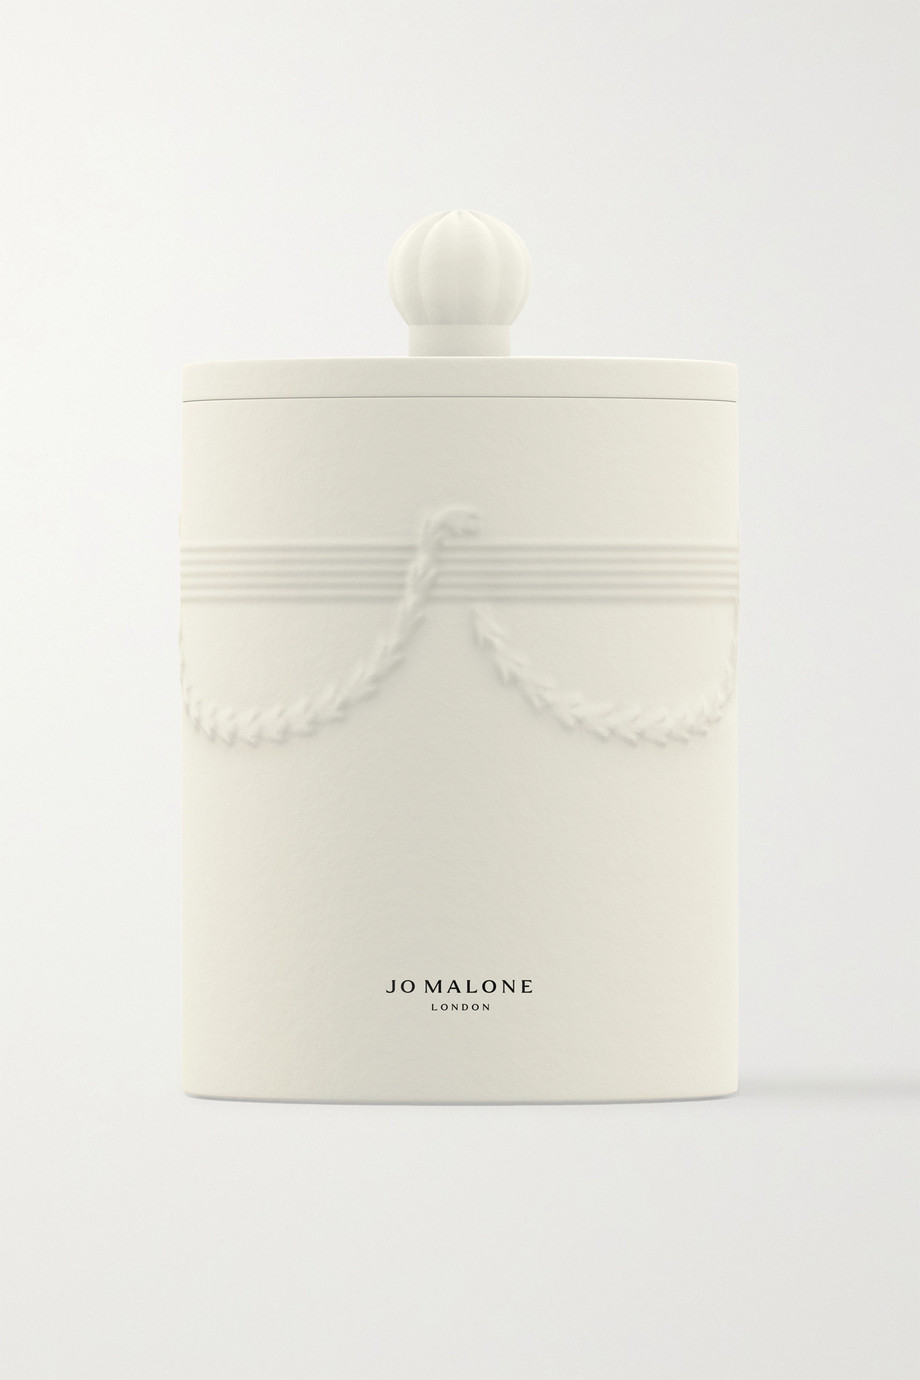 Jo Malone London Pastel Macaroons Scented Candle, 300g